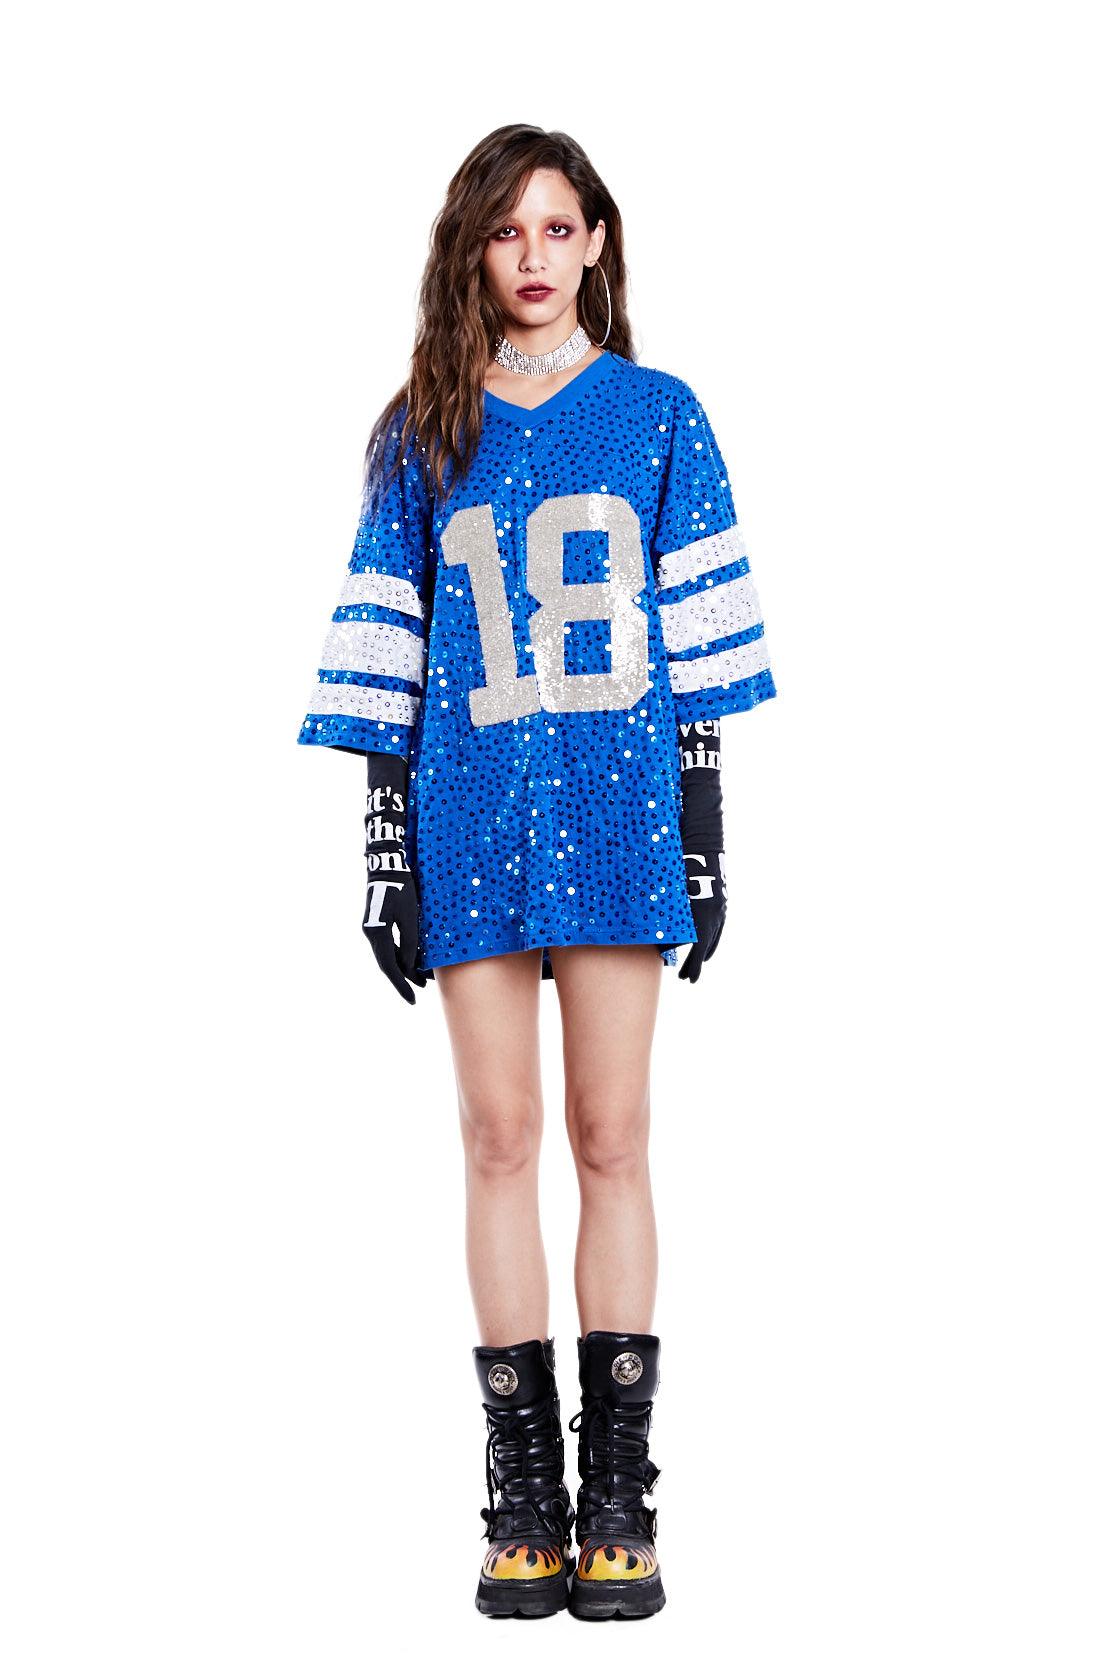 American Football Jersey Top - Peyton Manning '18' - I LOVE DIY by Panida